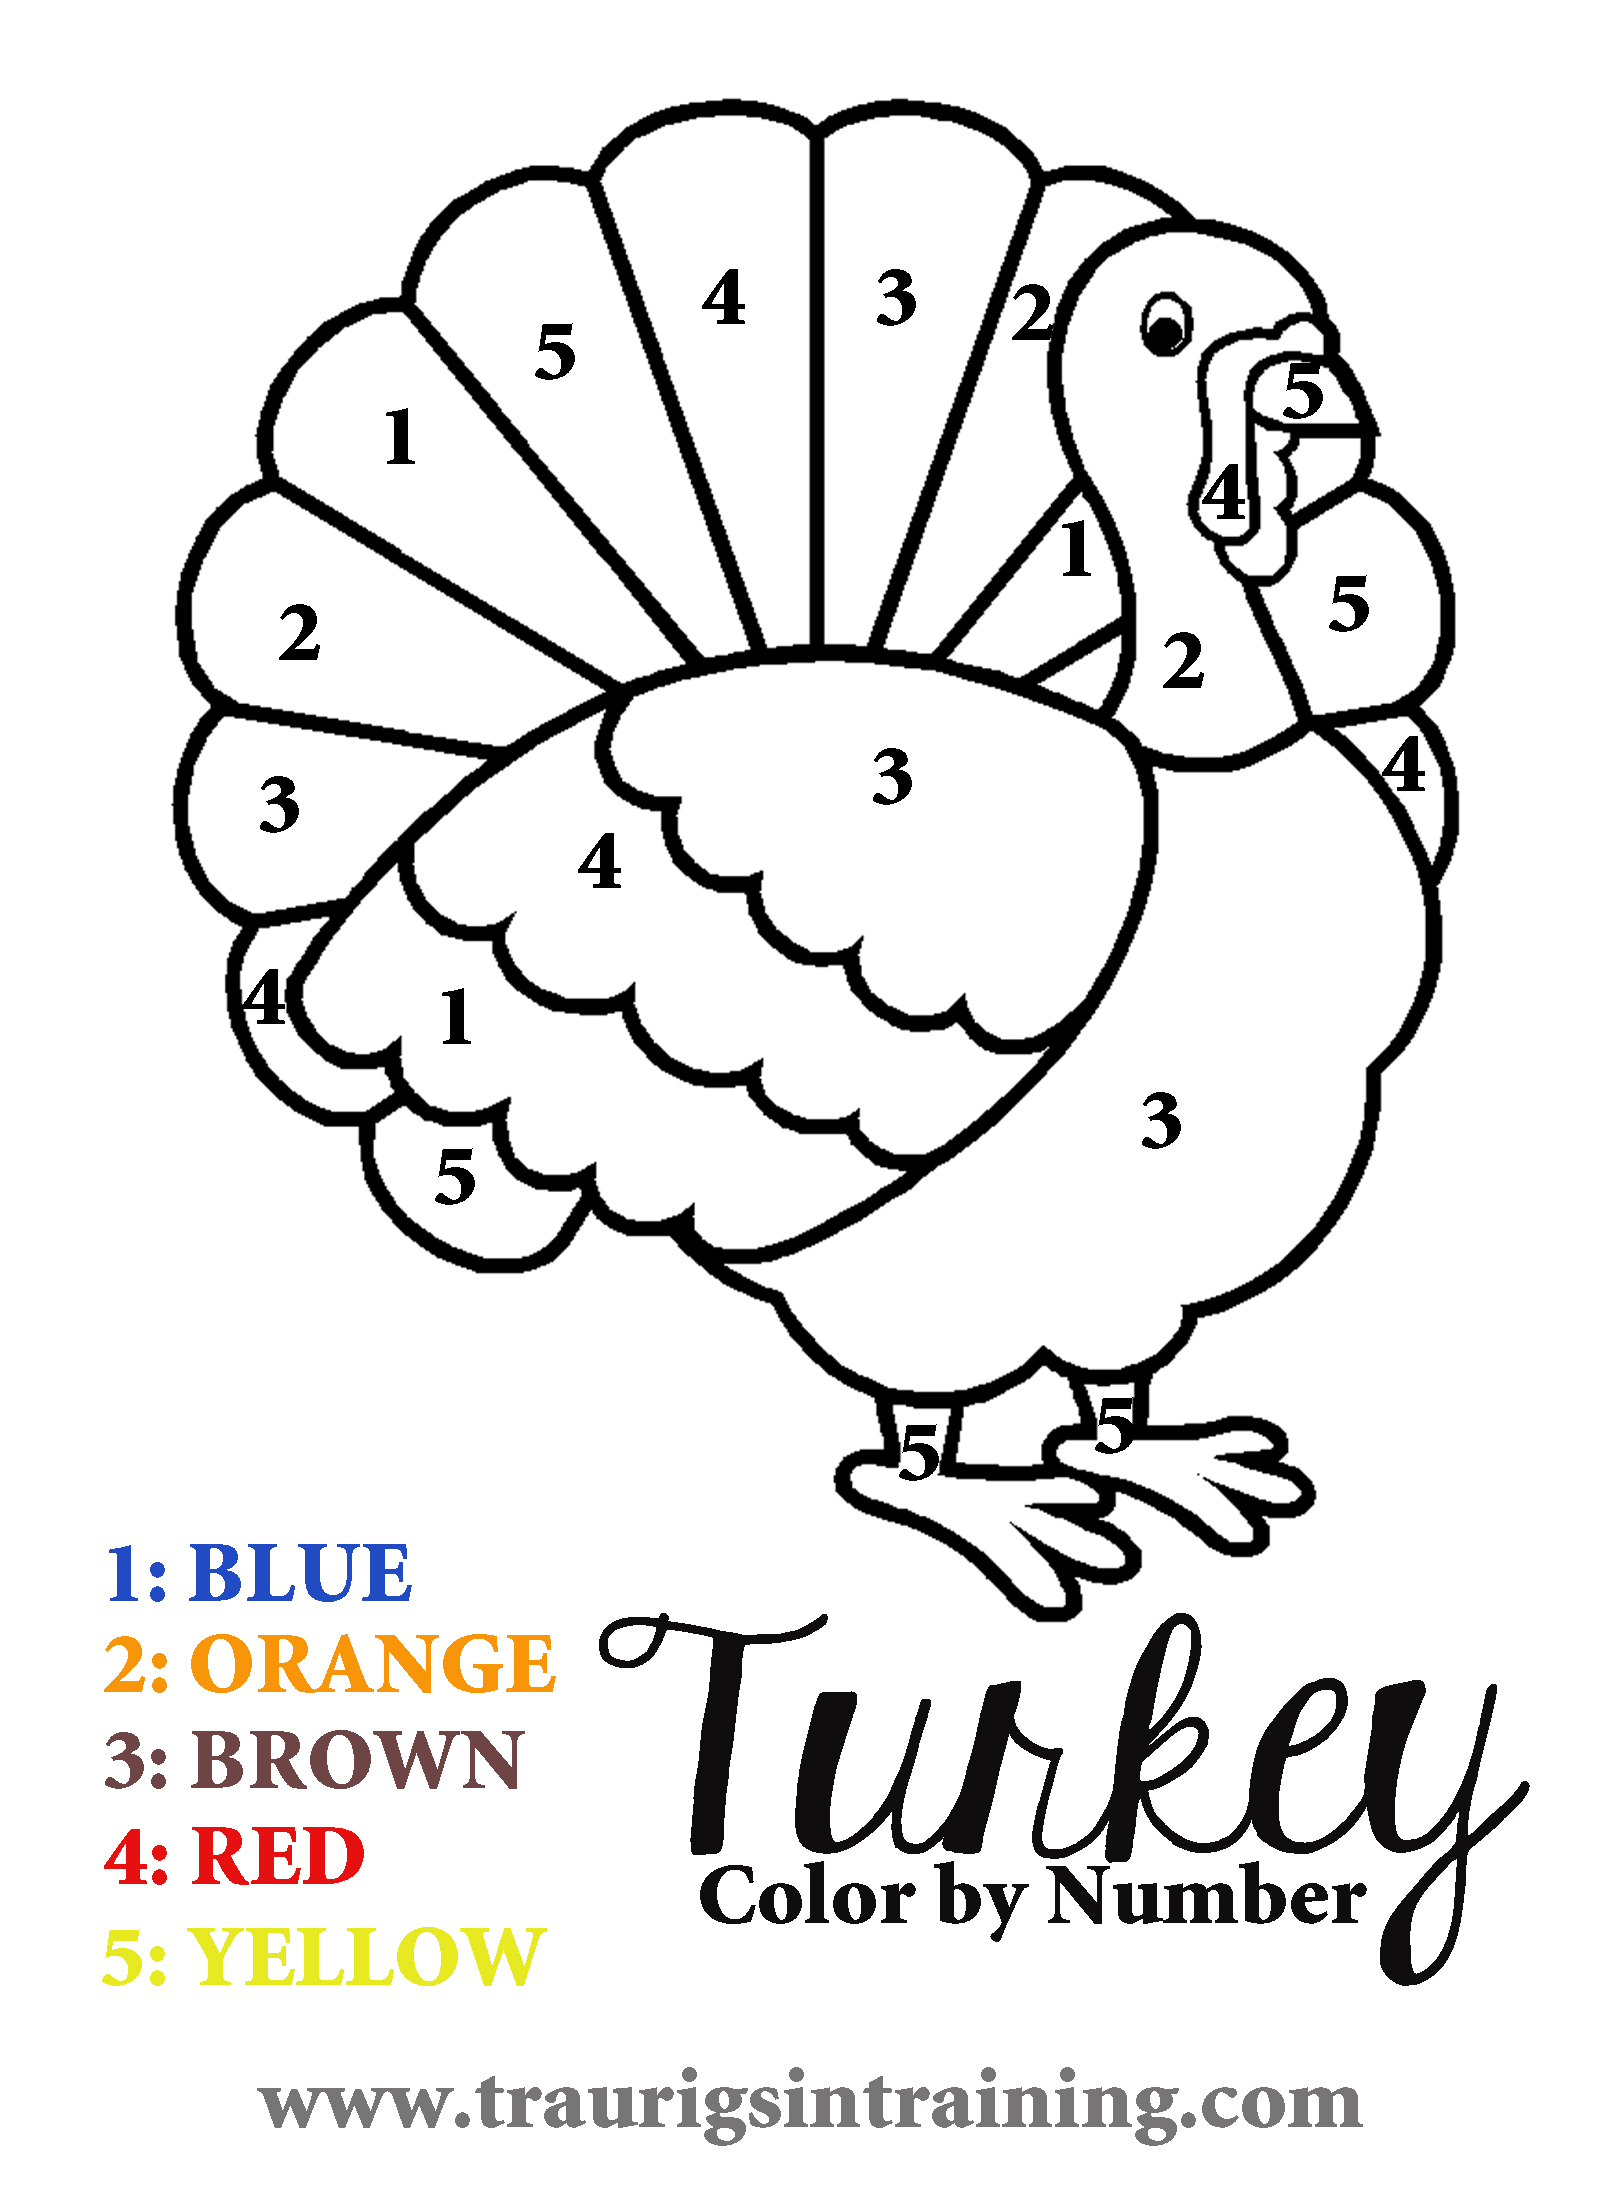 17 Printable Color by Number Turkey | KittyBabyLove.com